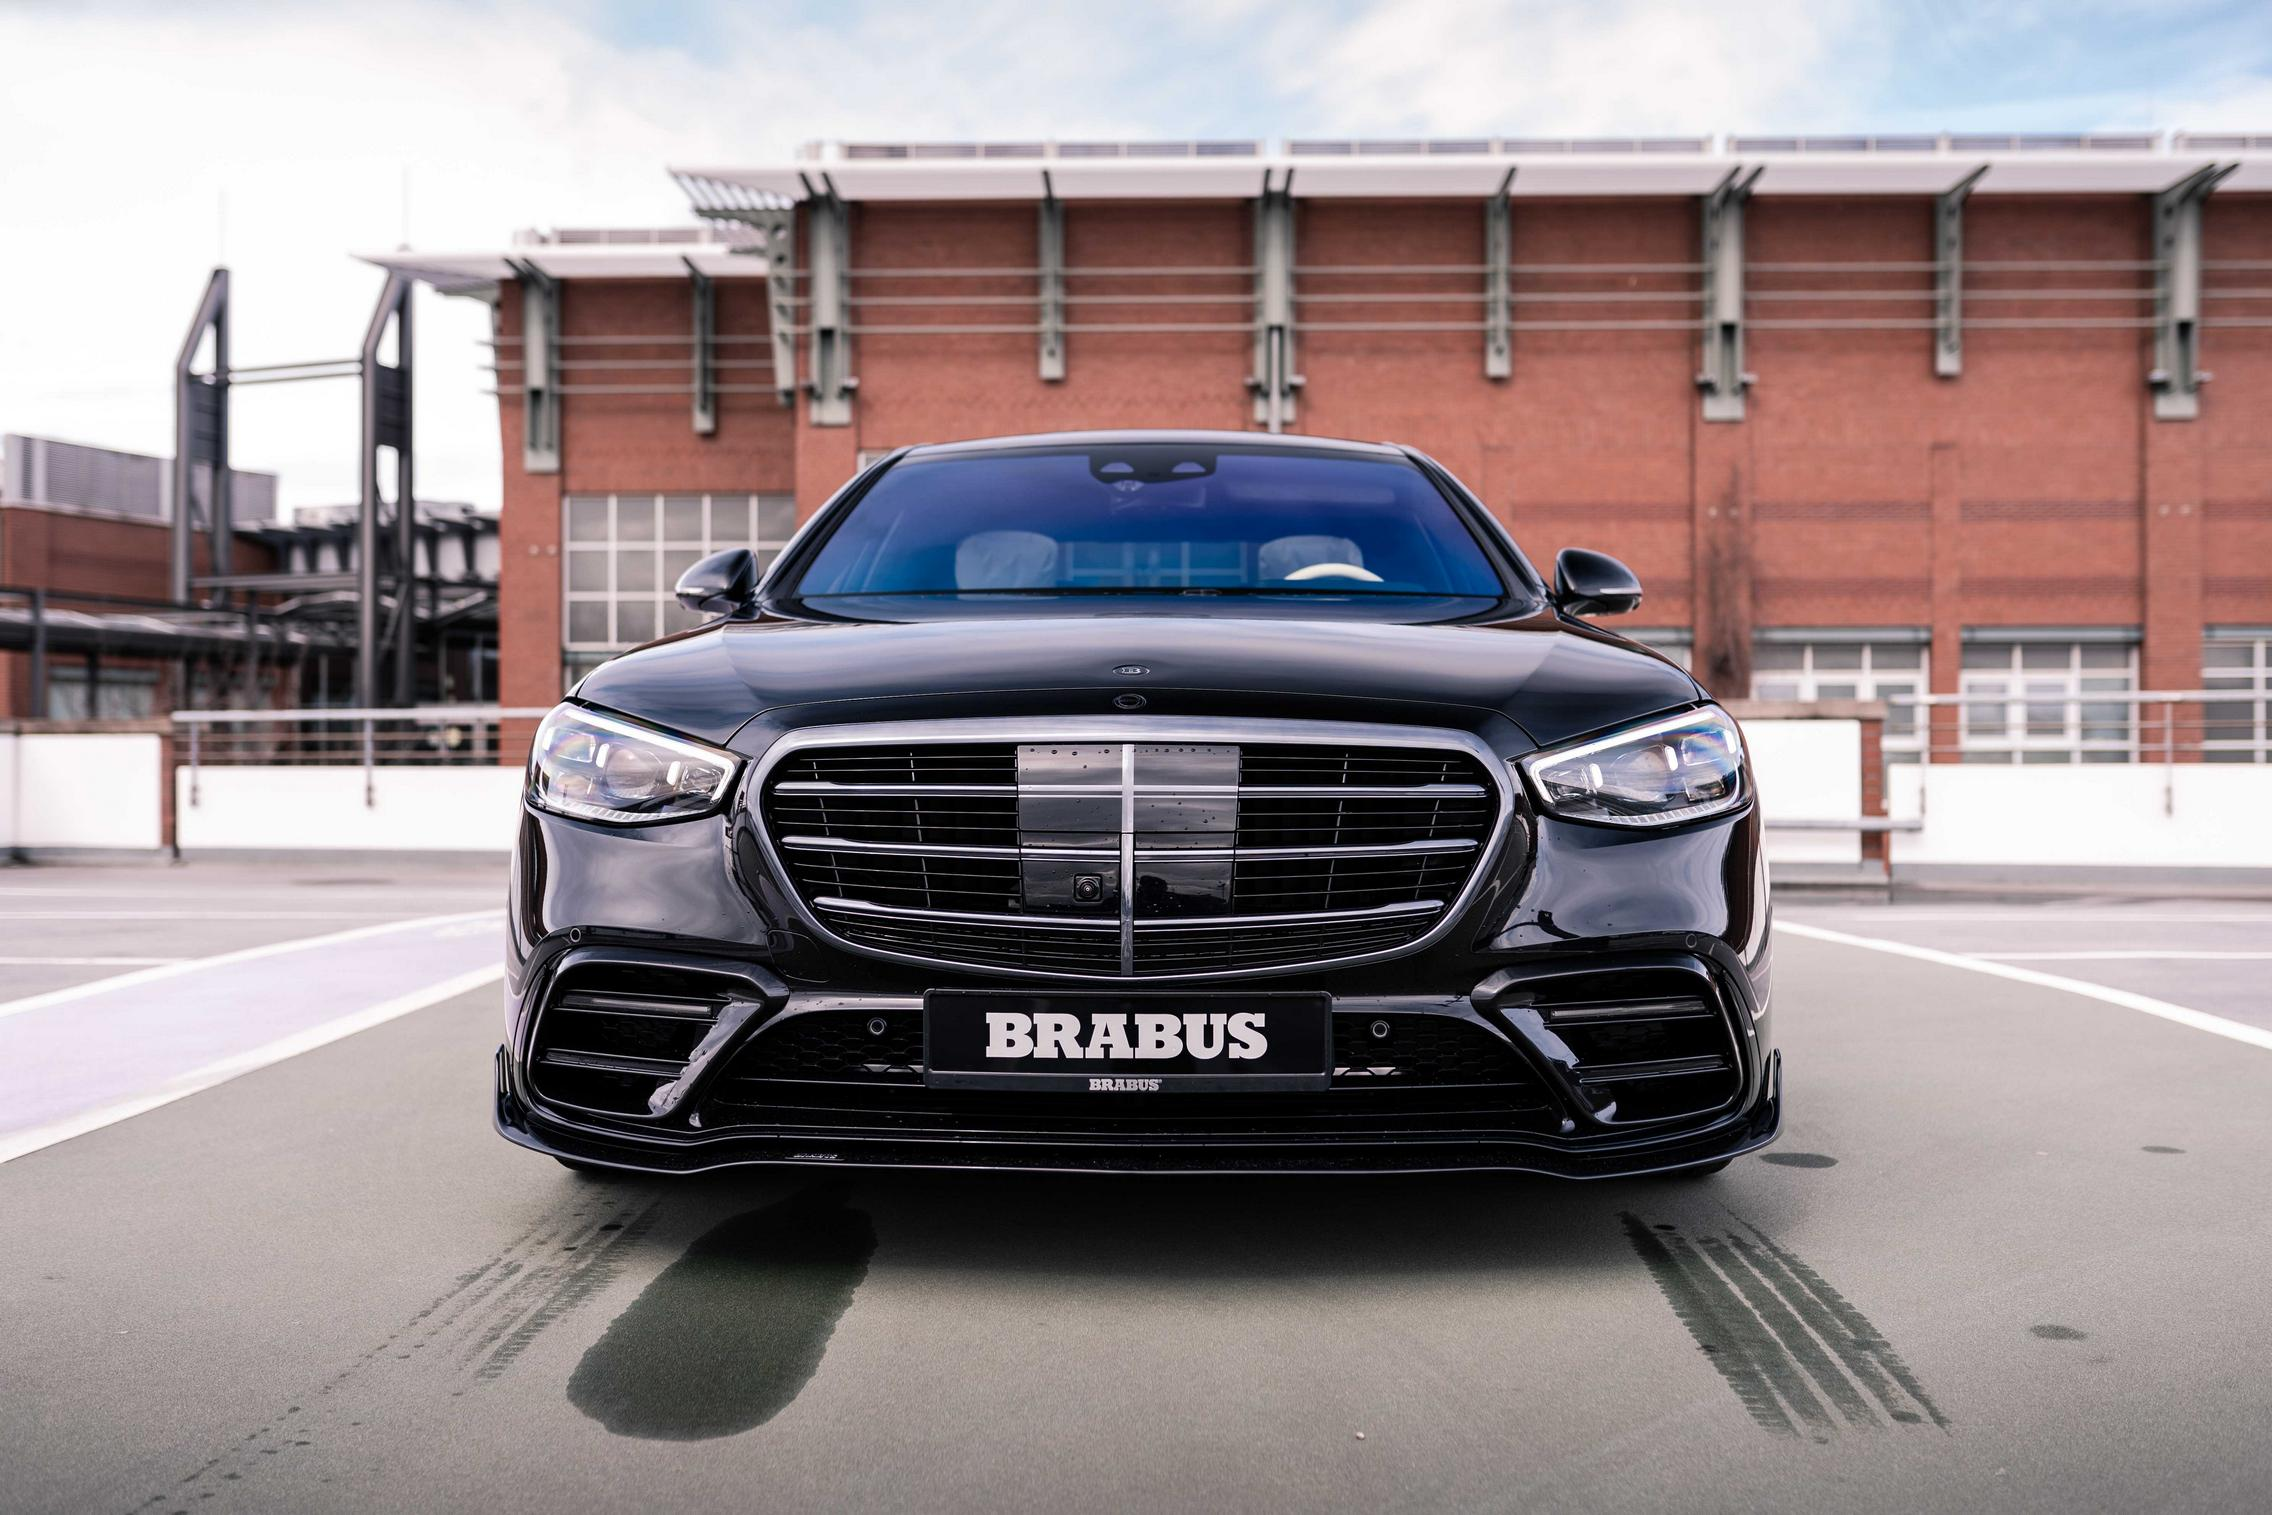 Brabus S-Class front grille